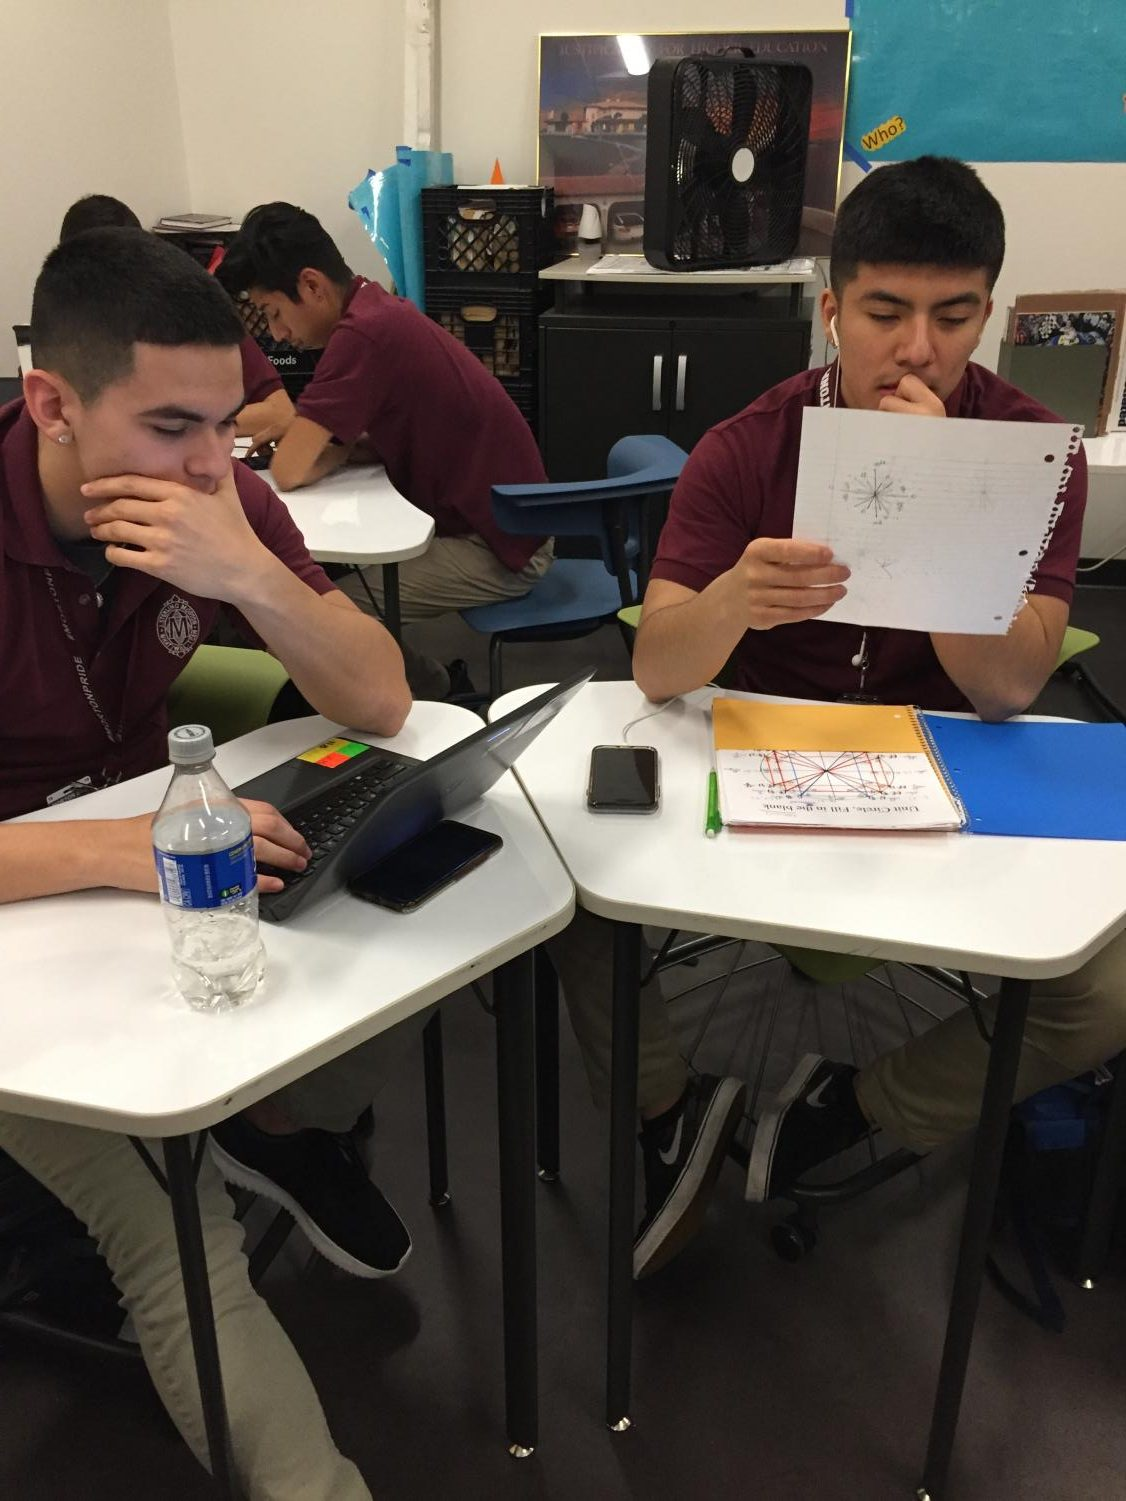 Seniors William Ramos and Adrian Gallegos are working on their assignments the way they feel most comfortable with.